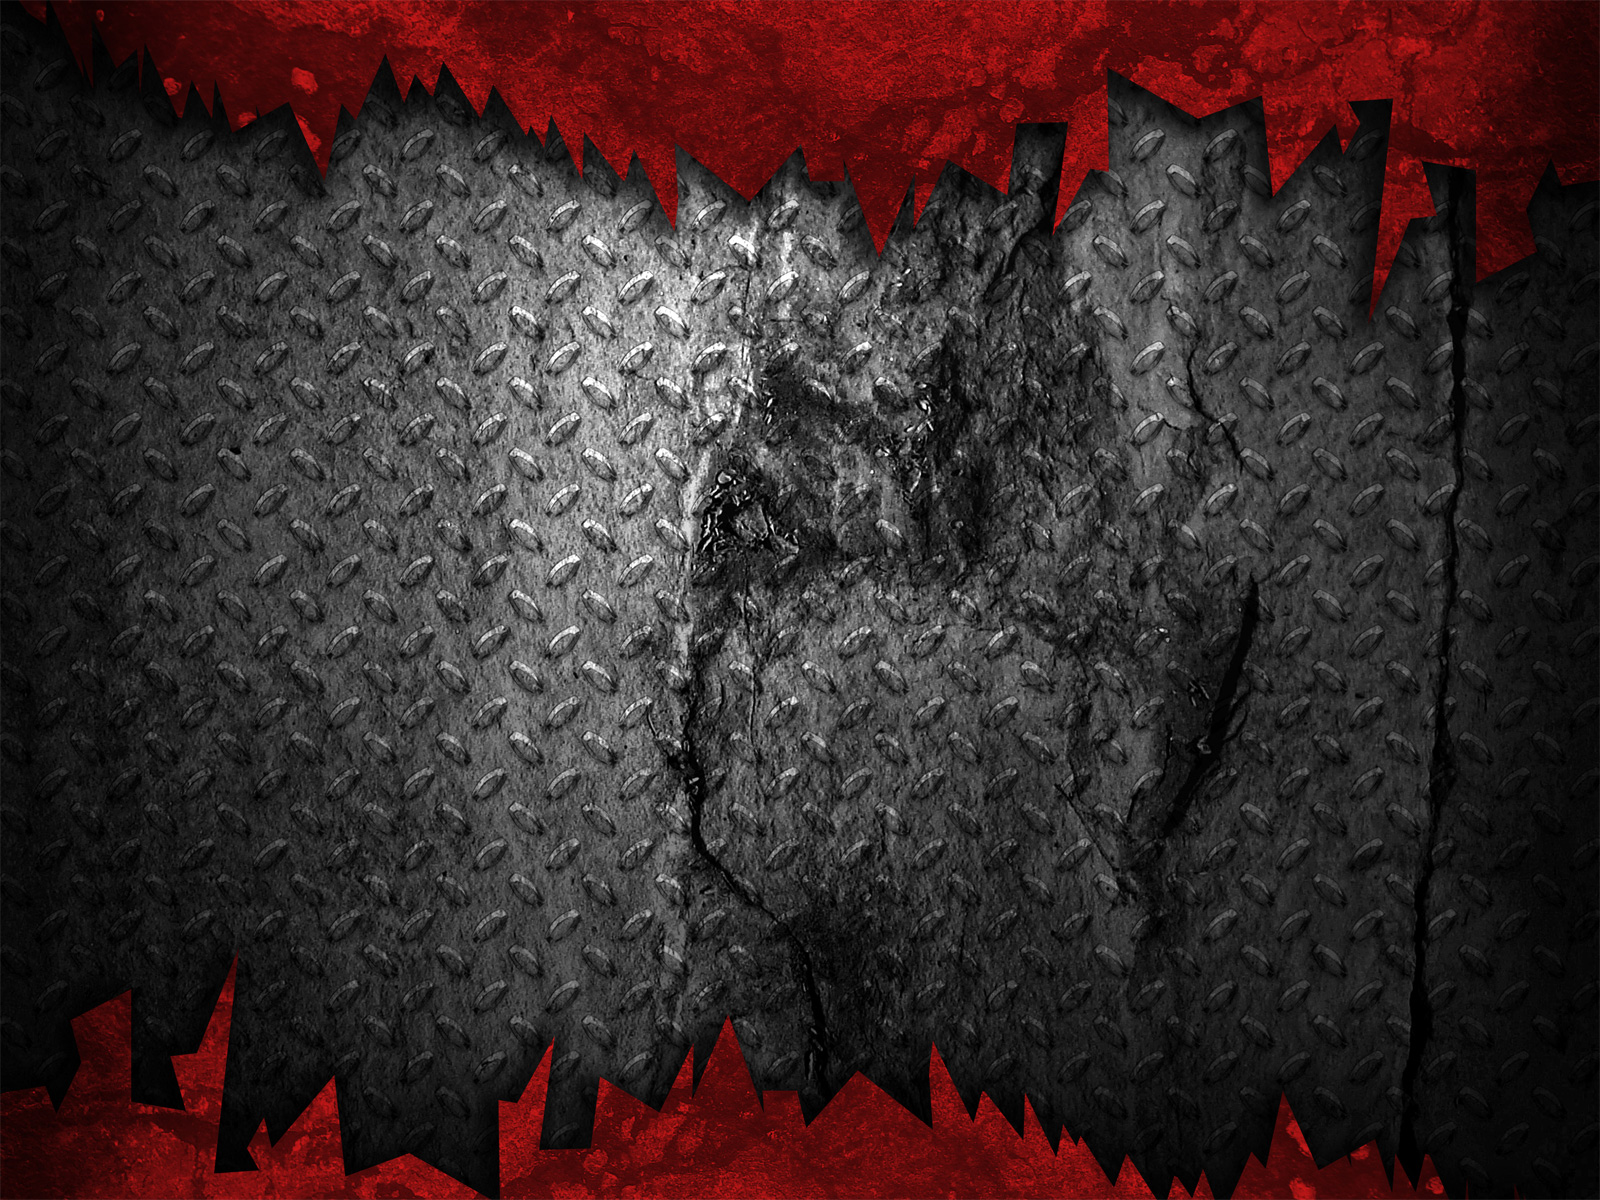 Black Diamond Plate Wallpaper 15 Halloween Psd Backgrounds Images Free Photoshop